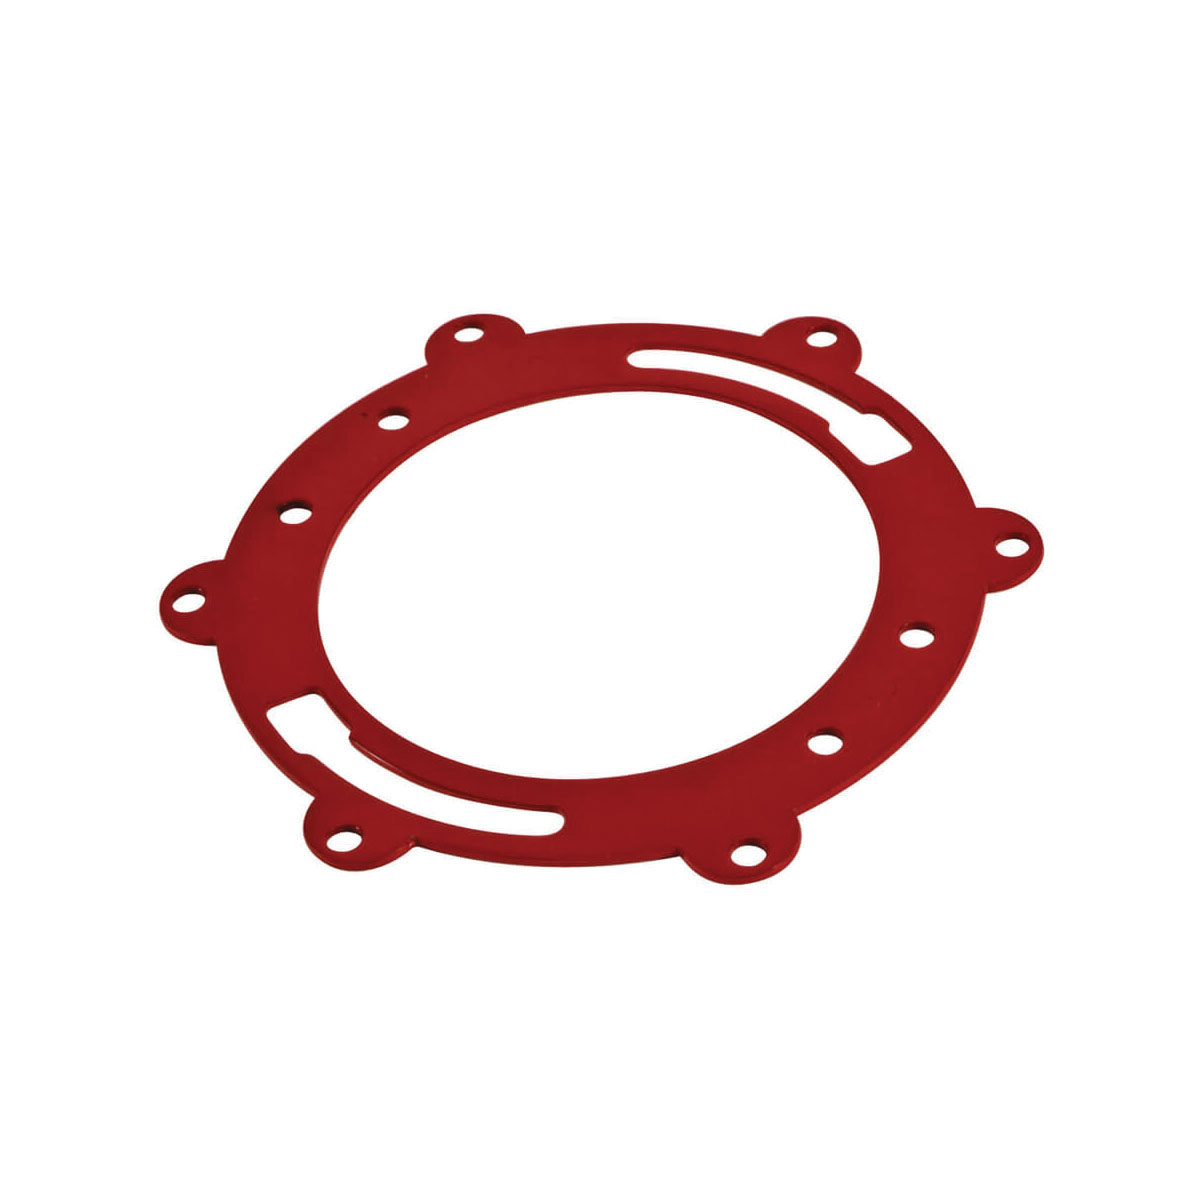 DANCO™ 88904 Toilet Flange Repair Ring, For Use With 1/4 in or 5/16 in Closet Bolts, Steel